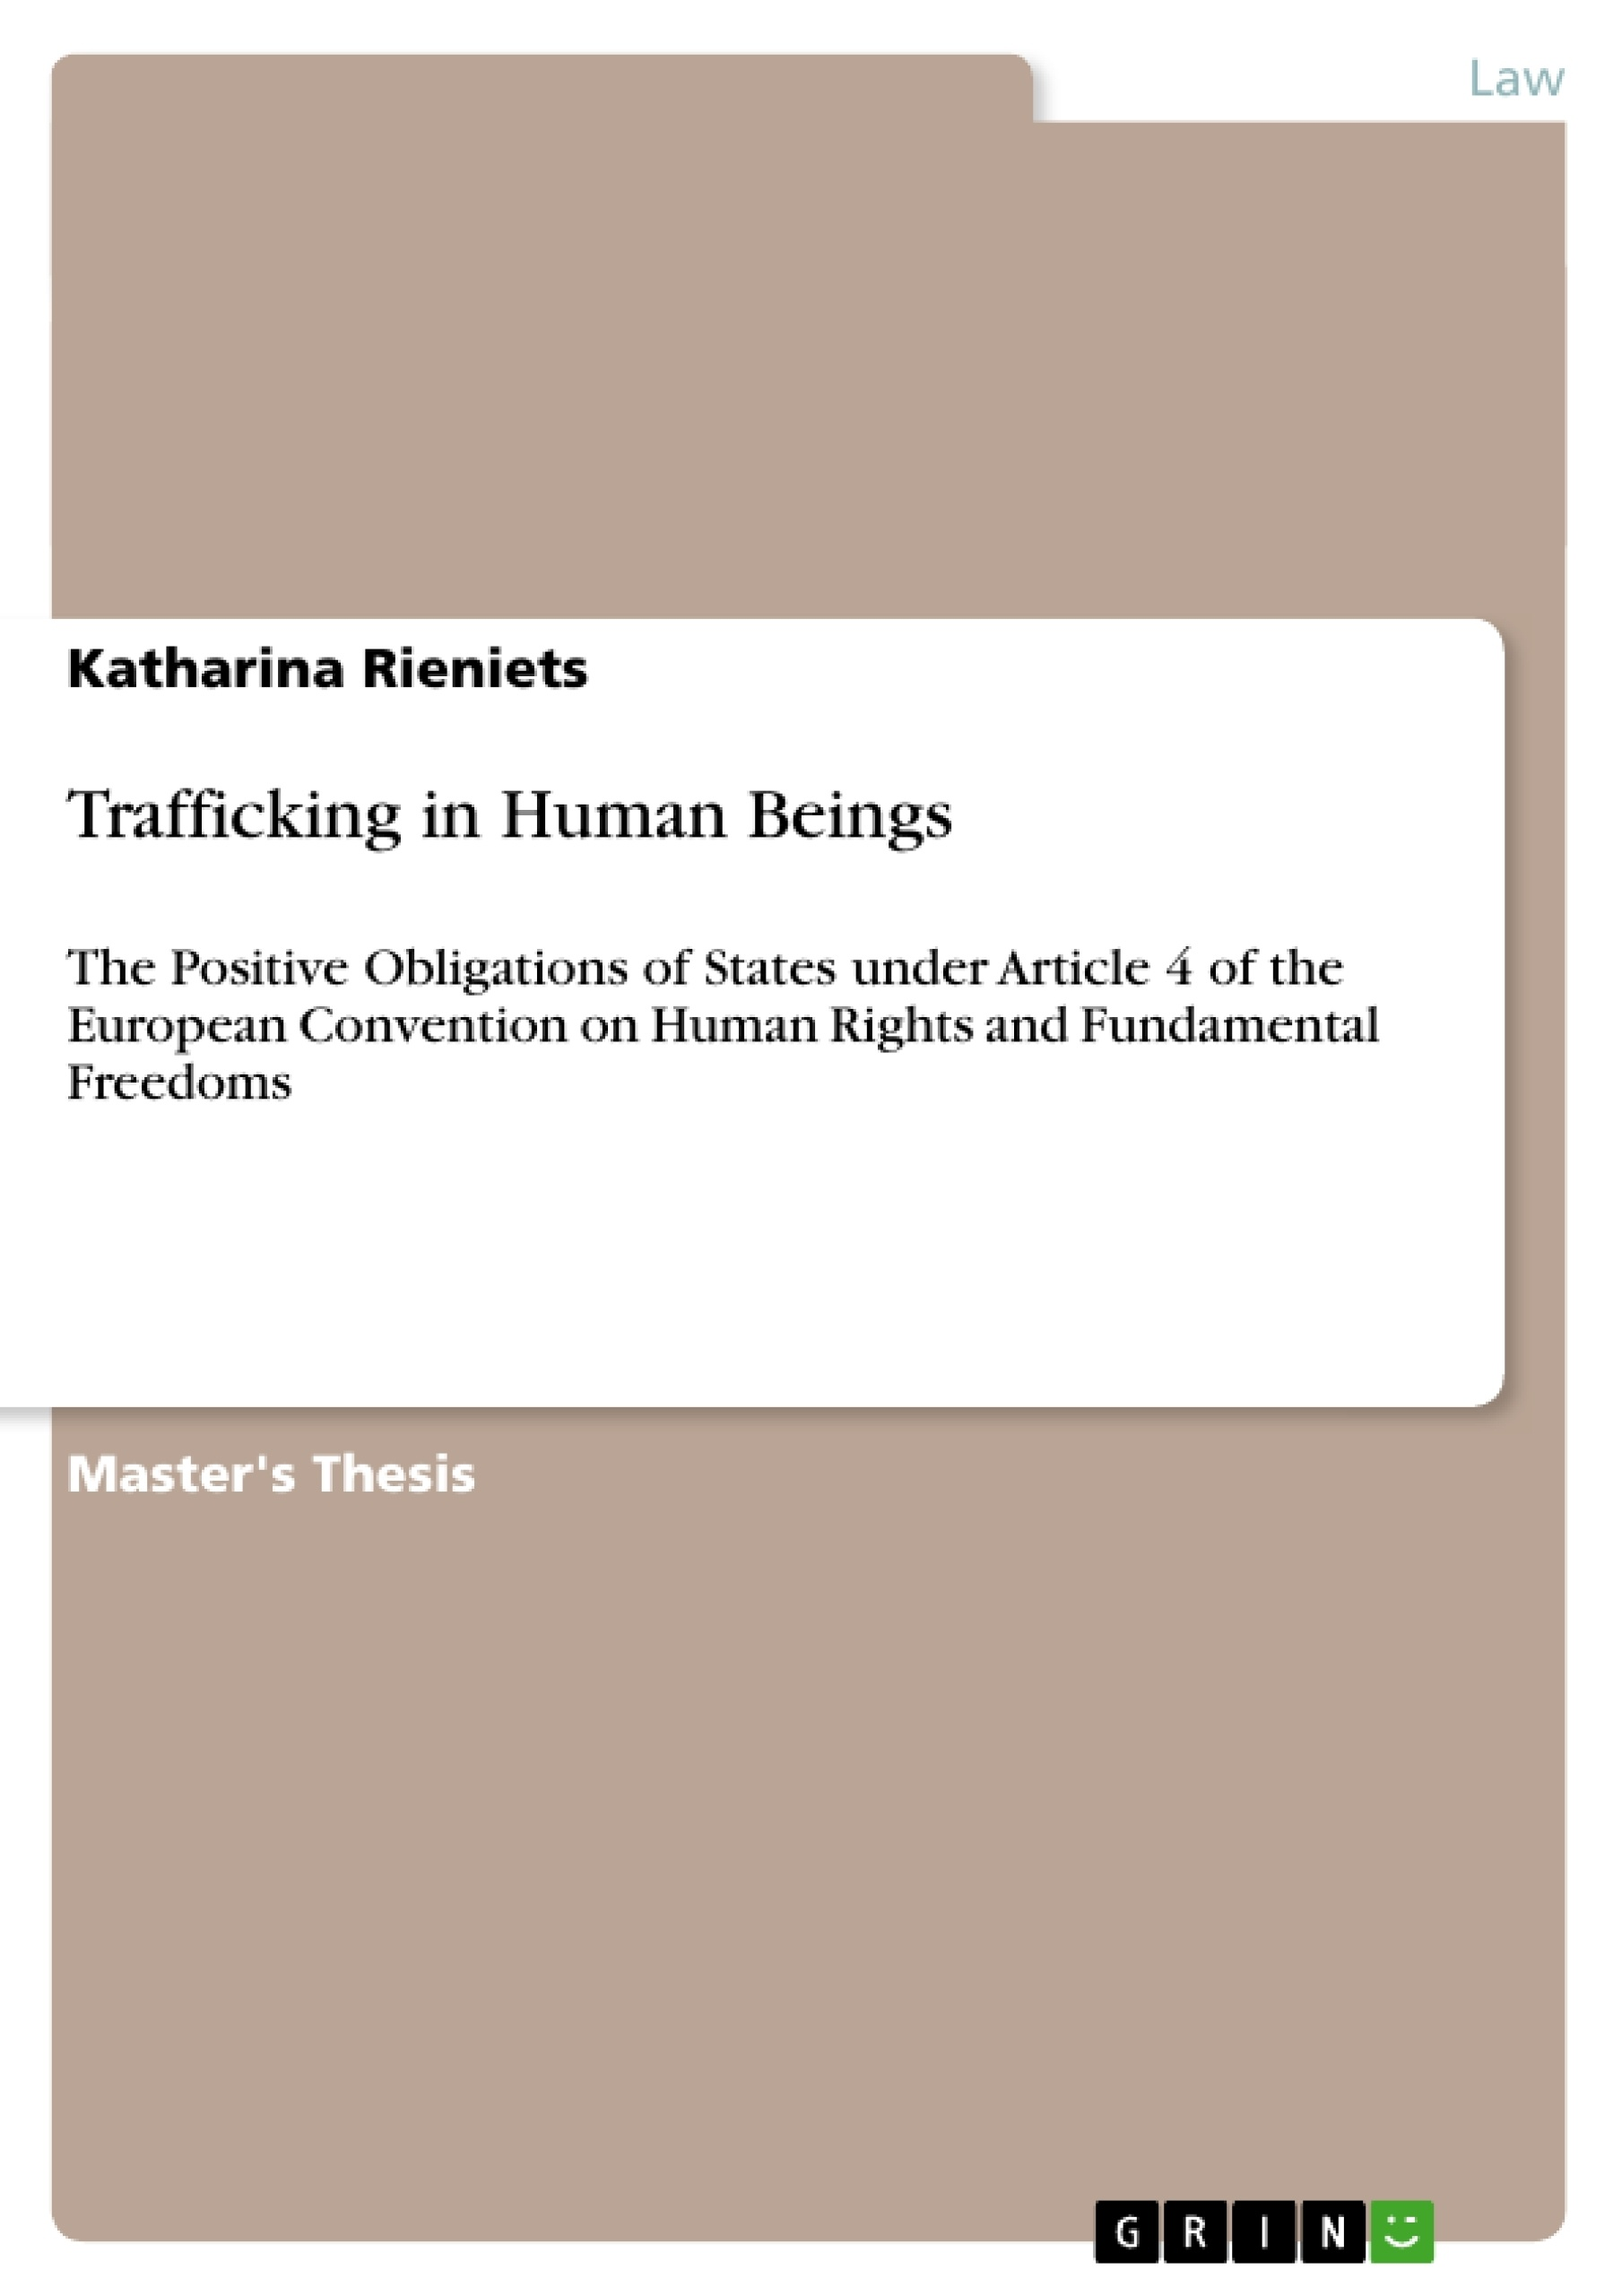 Title: Trafficking in Human Beings